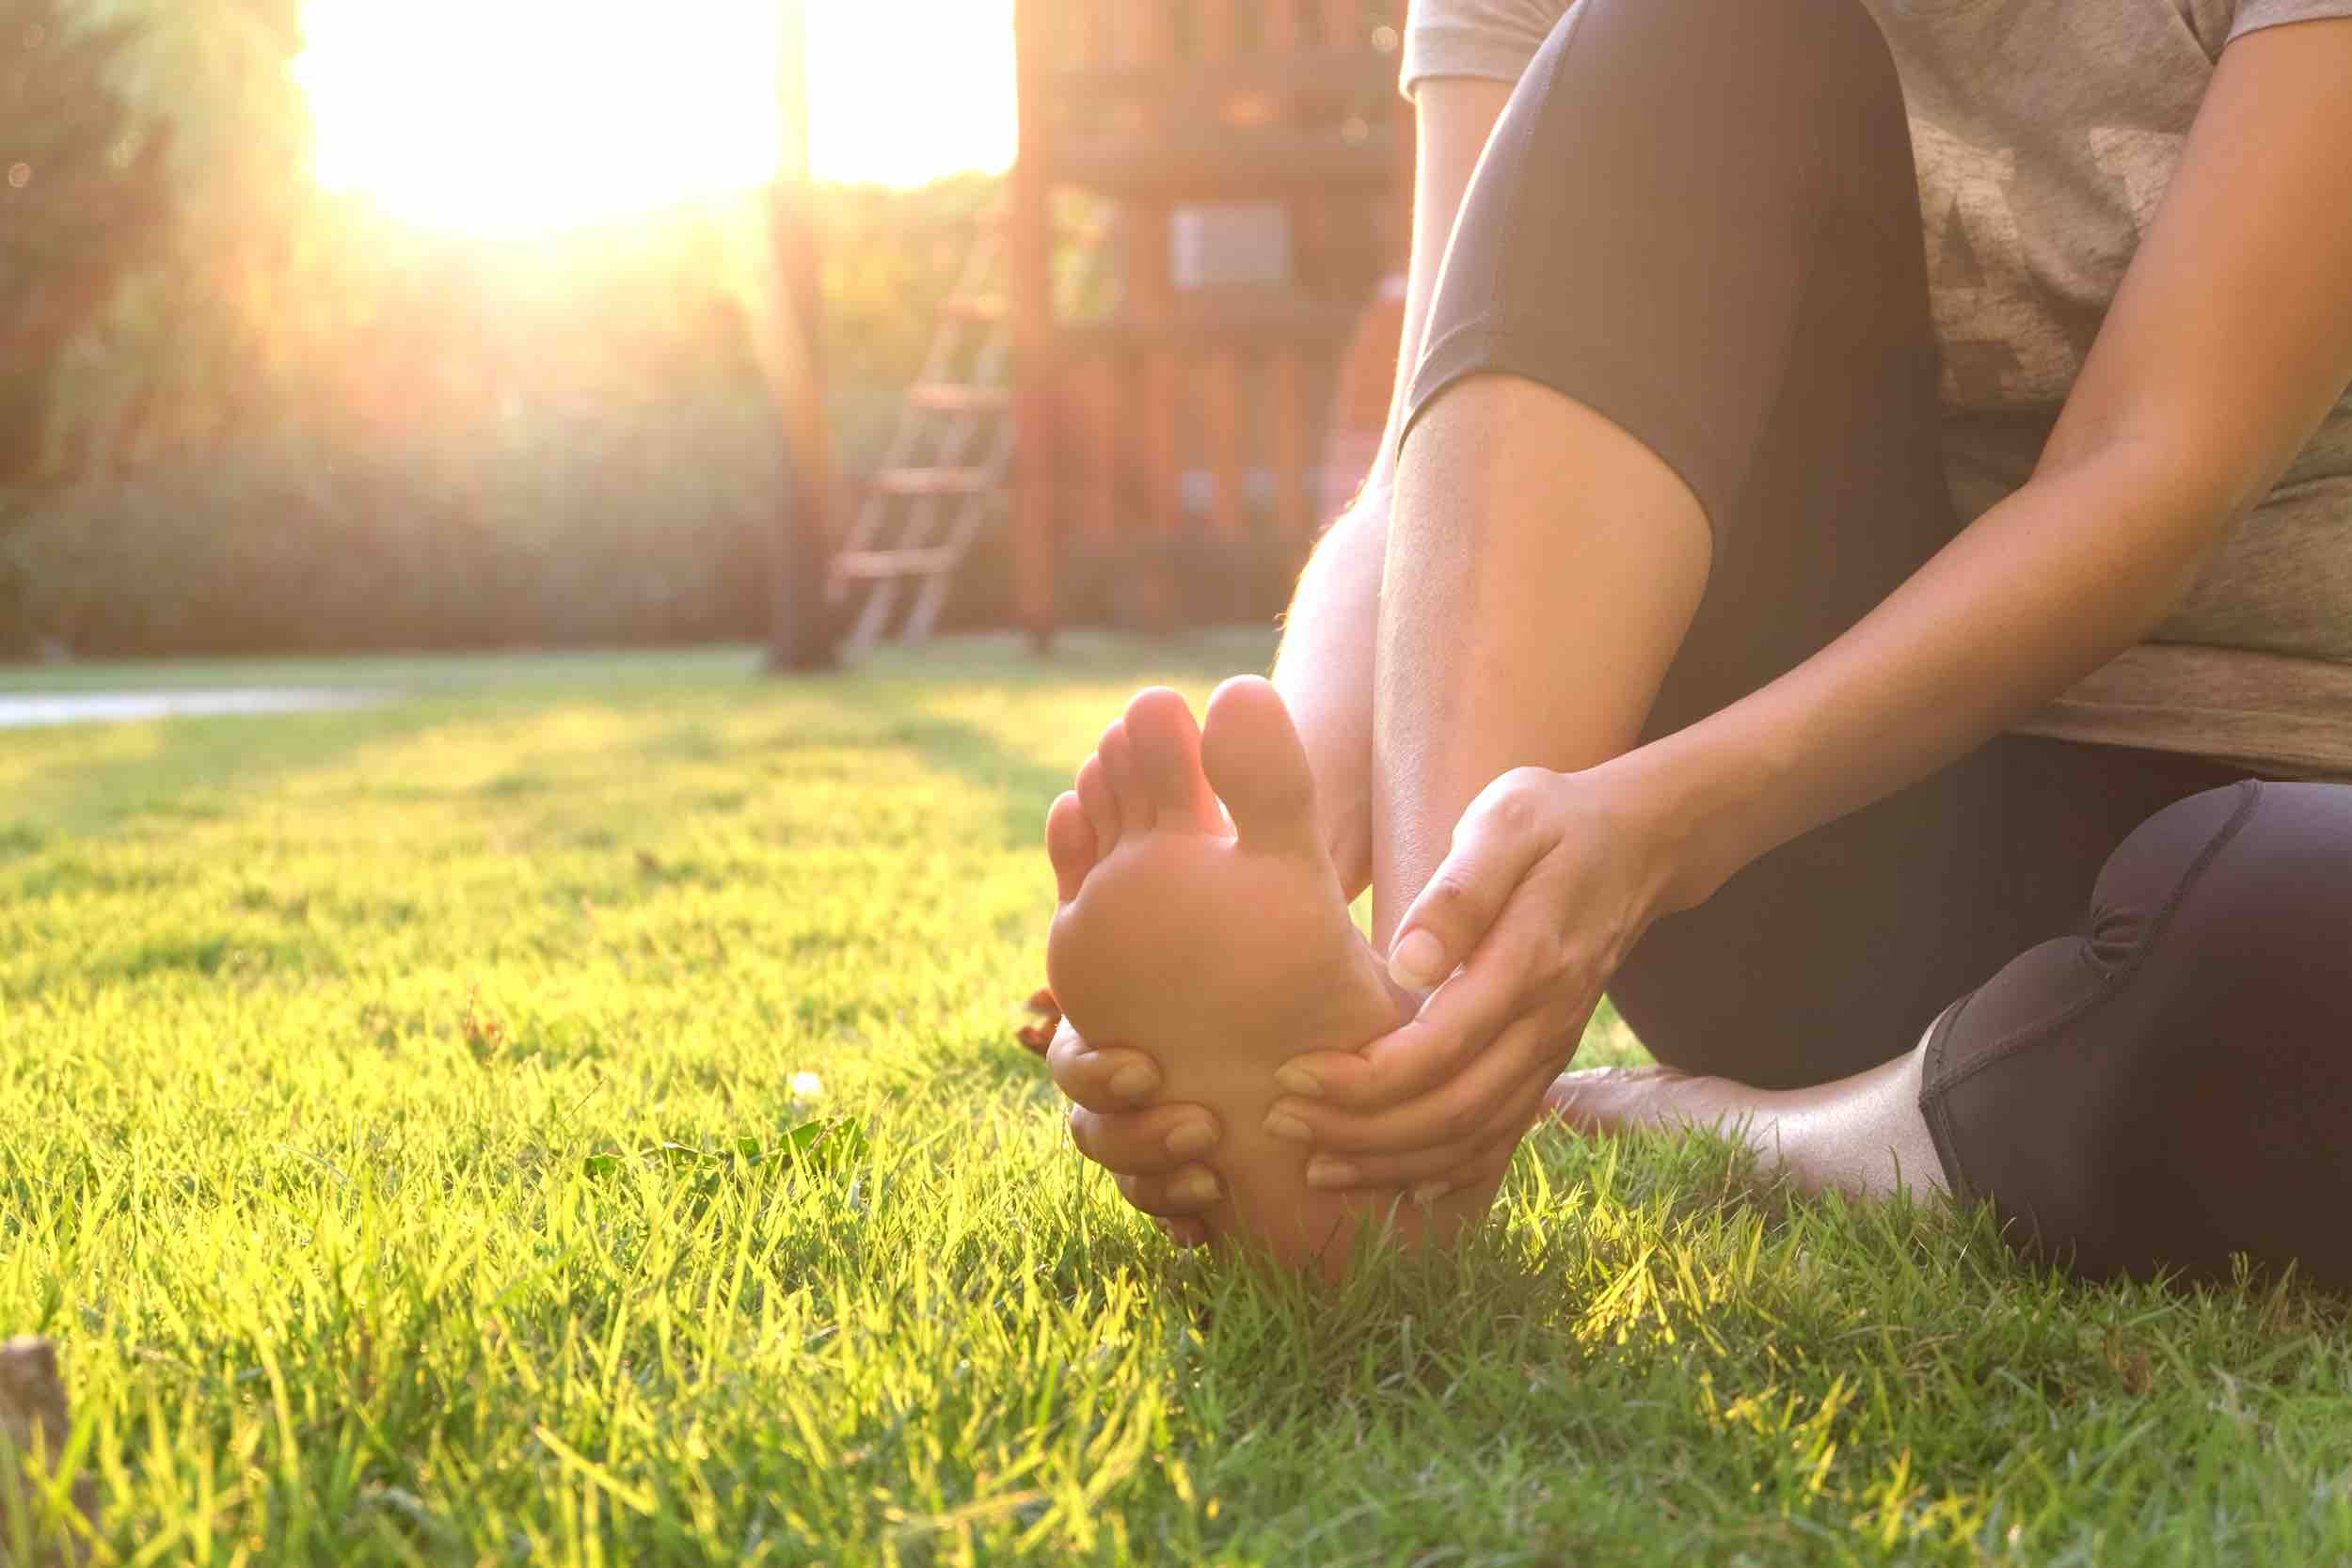 A Quick Guide to Foot and Heel Pain